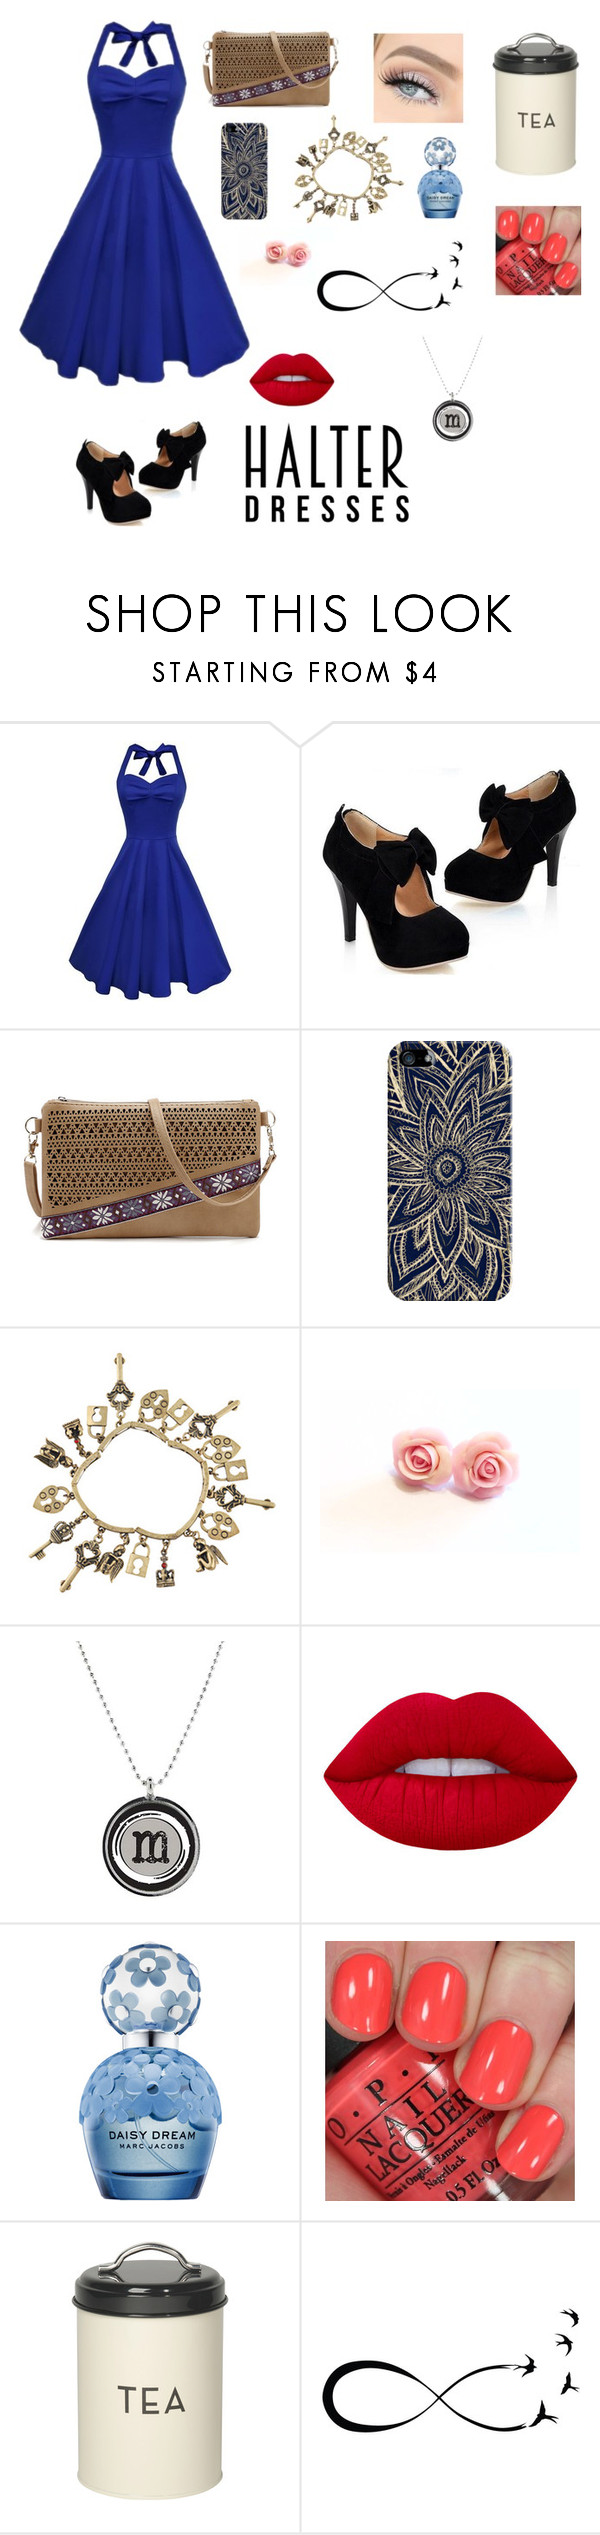 """""""Halter dresses contest"""" by chloe-maus ❤ liked on Polyvore featuring Casetify, Chicnova Fashion, Lime Crime, Marc Jacobs, OPI, Dot & Bo and halterdresses"""